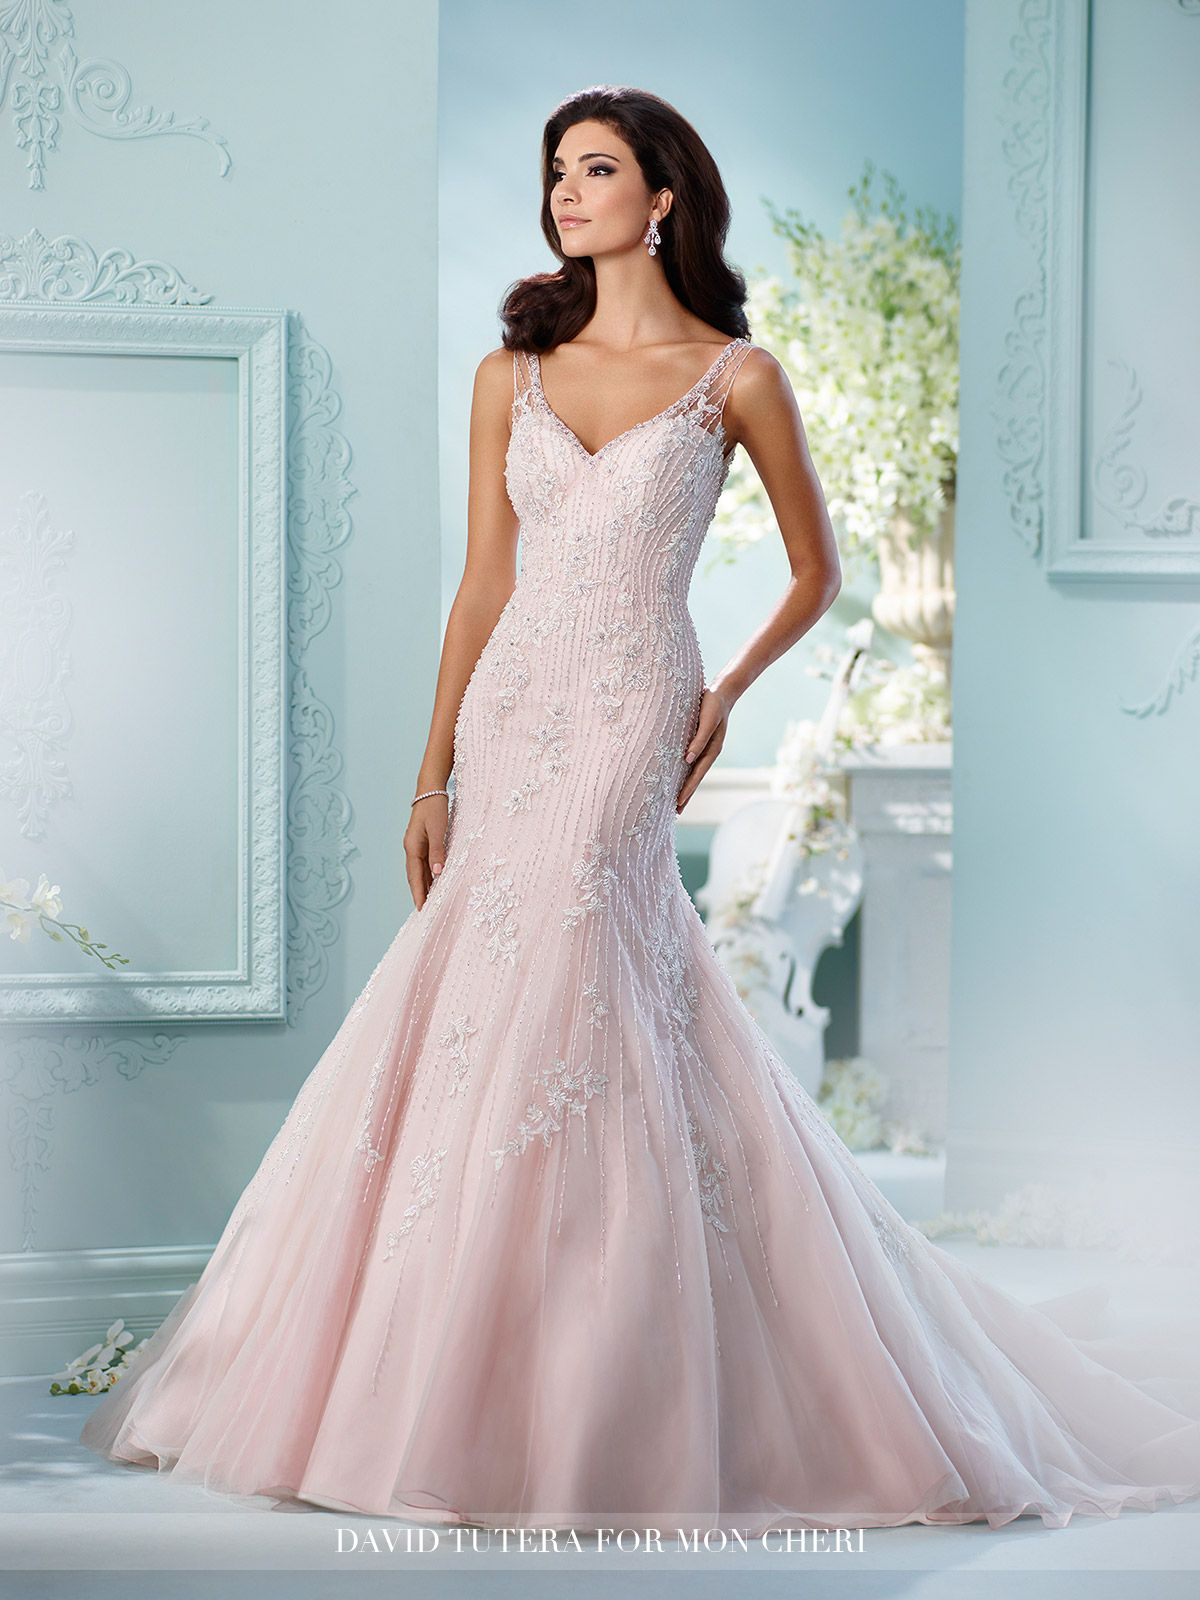 Hand-Beaded Embroidery on Tulle Trumpet Wedding Dress- 216234 Azure ...